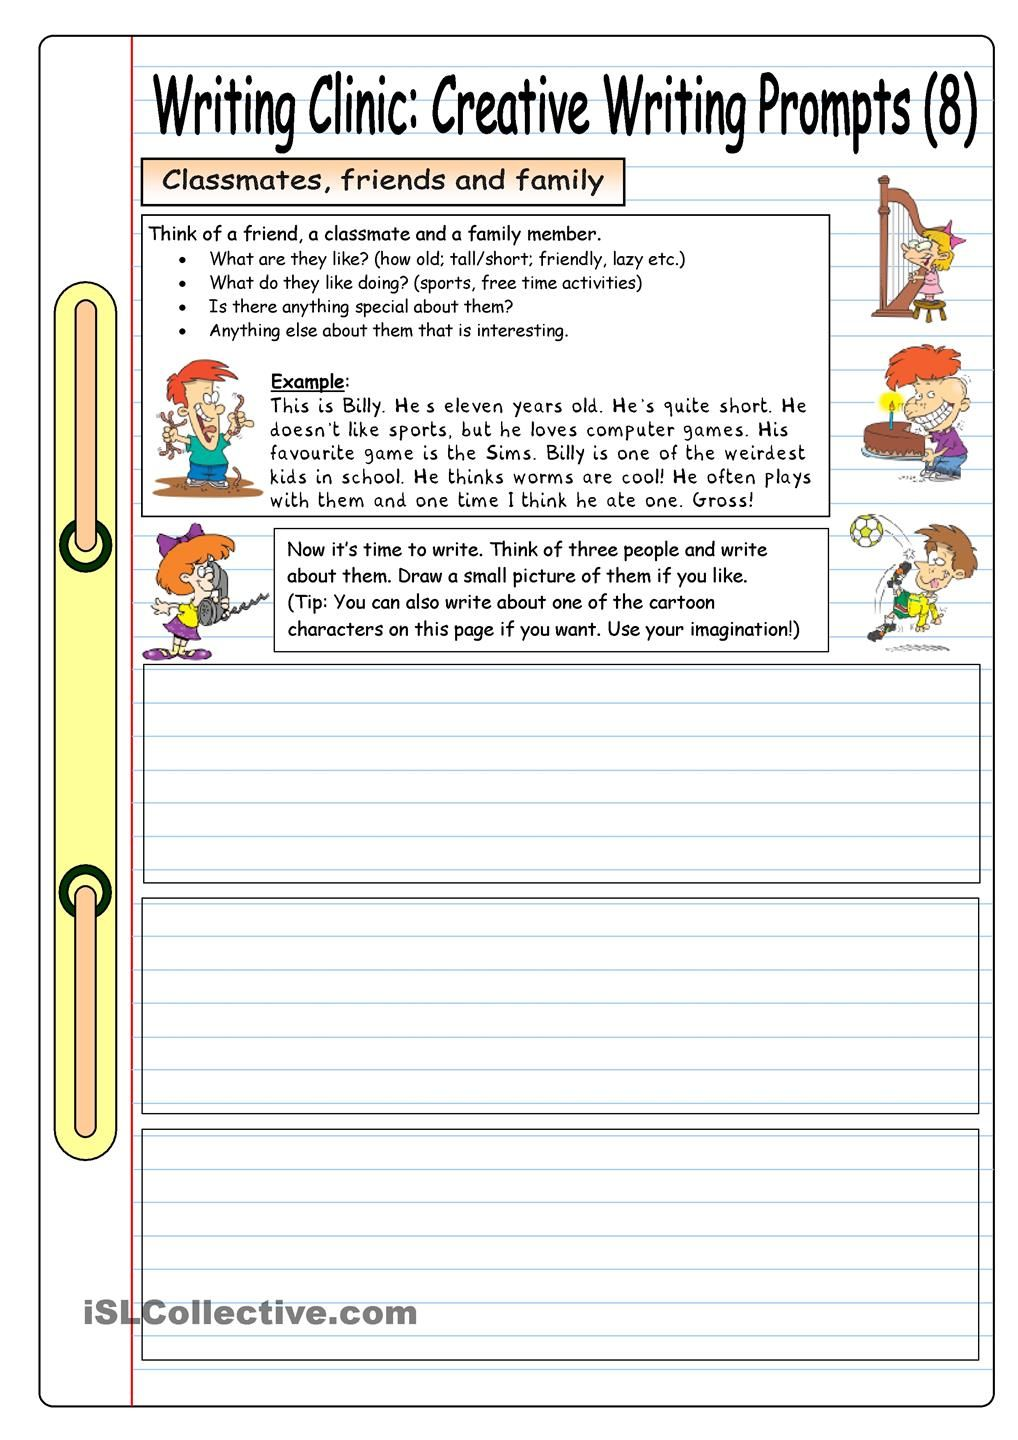 essay writing activities for esl students Writing check out our free english resources related to writing, featuring a range of online ideas for esl lesson plans help students improve their writing skills with story writing games, word making activities, funny caption worksheets, sentence quizzes, instructional videos, funny puns and more.